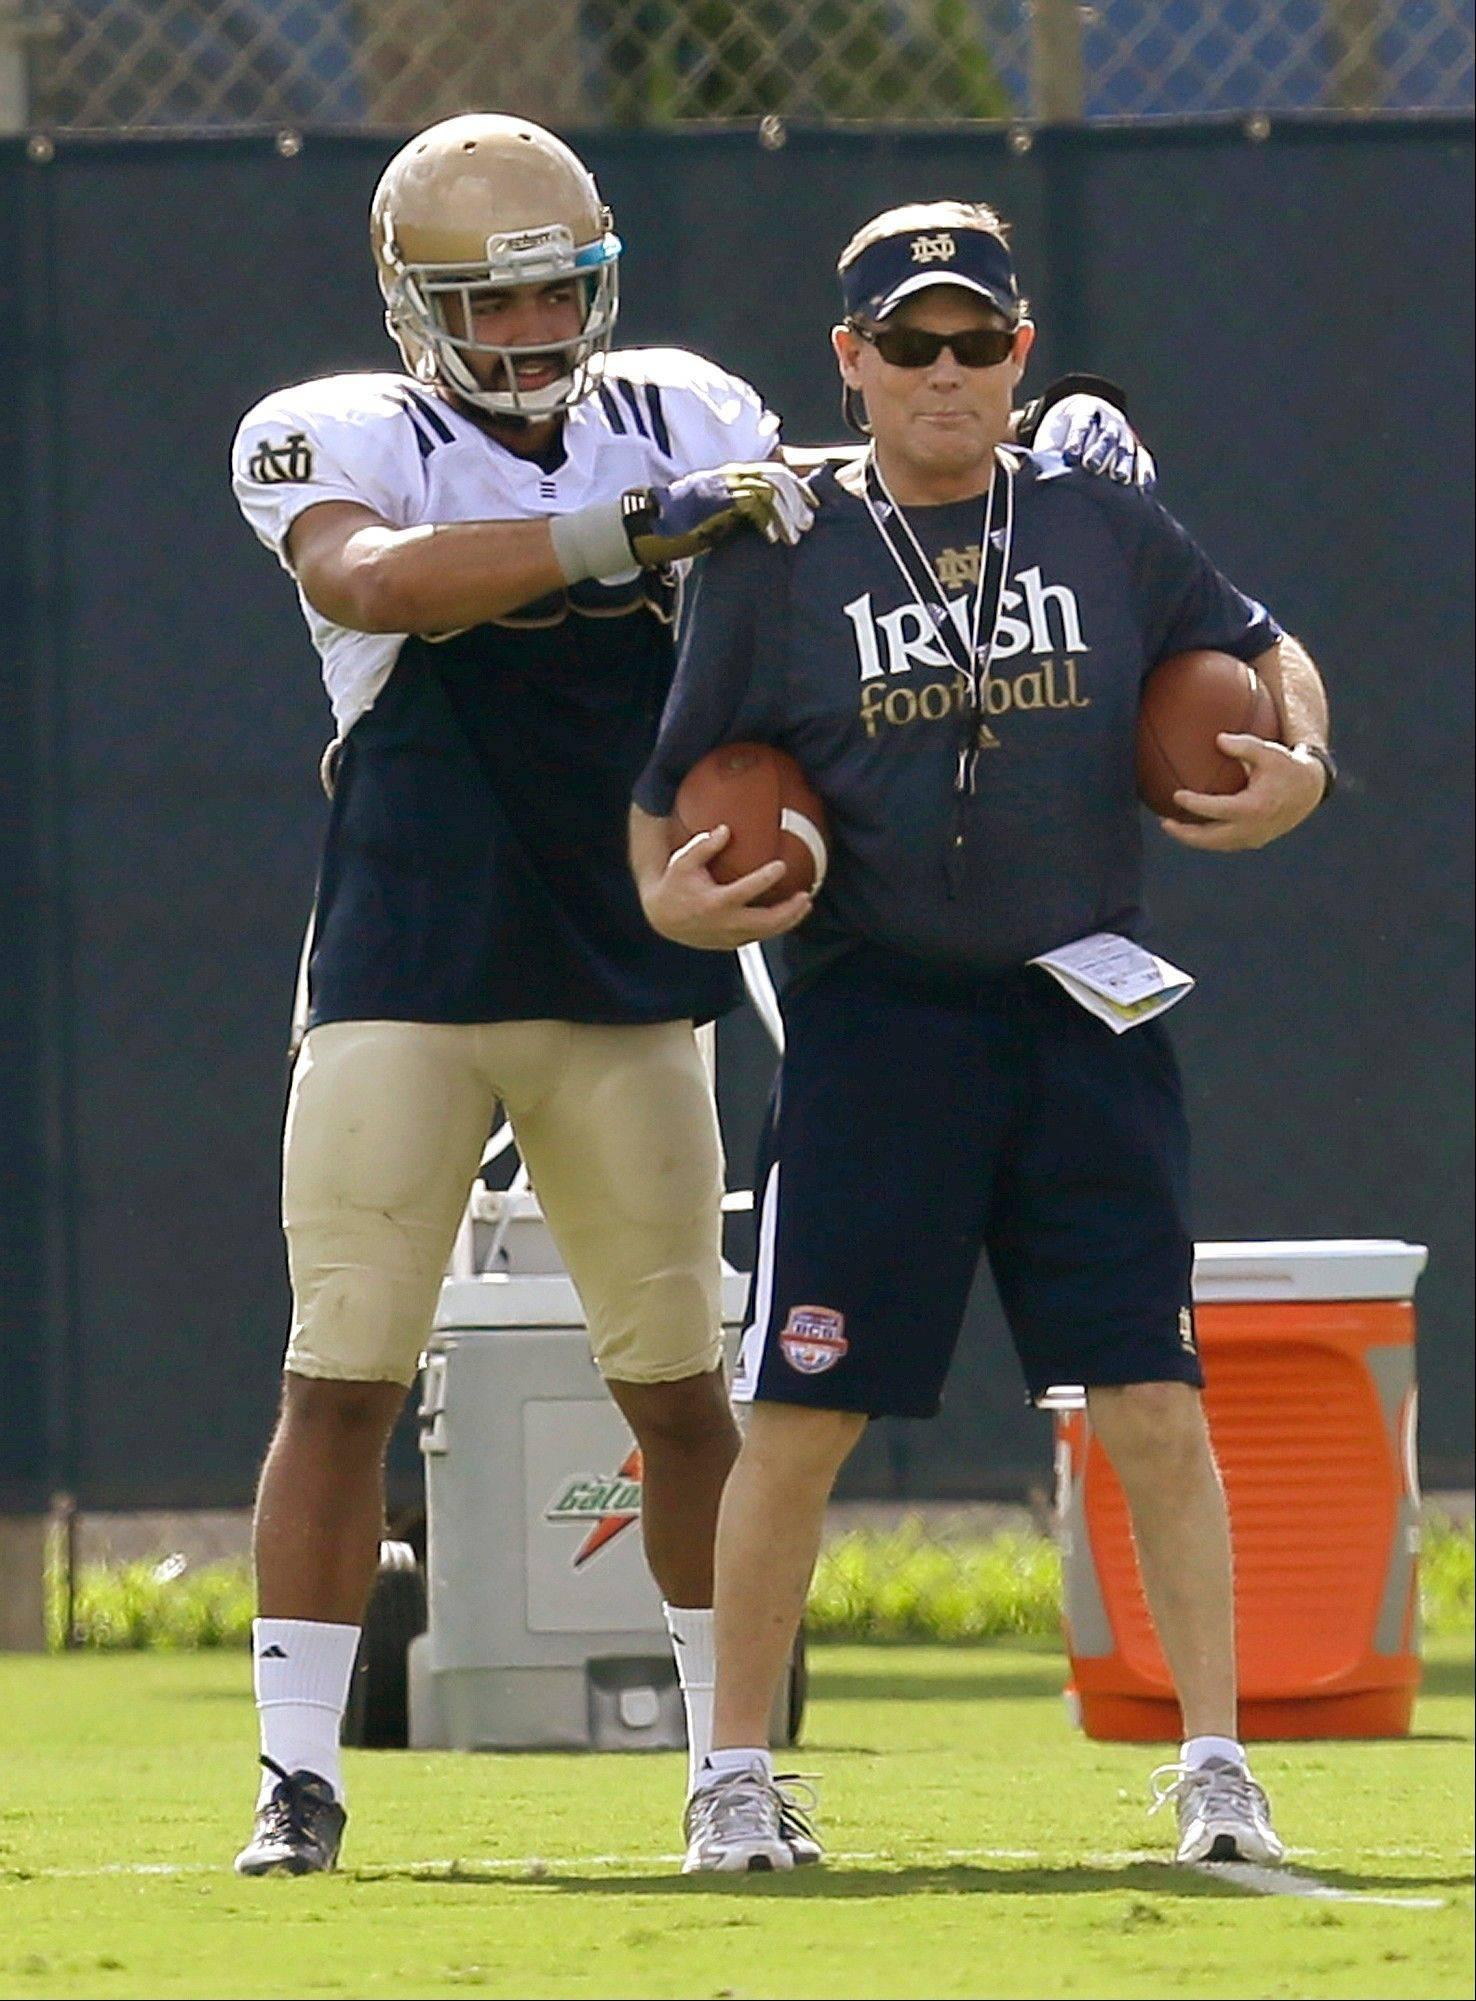 Notre Dame safety Matthias Farley, left, stands behind safeties coach Bob Elliott during practice, Thursday, Jan. 3, 2013, at the Miami Dolphins' training facility in Davie, Fla. Notre Dame is scheduled to play Alabama on Monday, Jan. 7, in the BCS national championship NCAA college football game. Farley was a soccer player before transitioning to football, first as a wide receiver and now a starting safety for No. 1 Notre Dame.